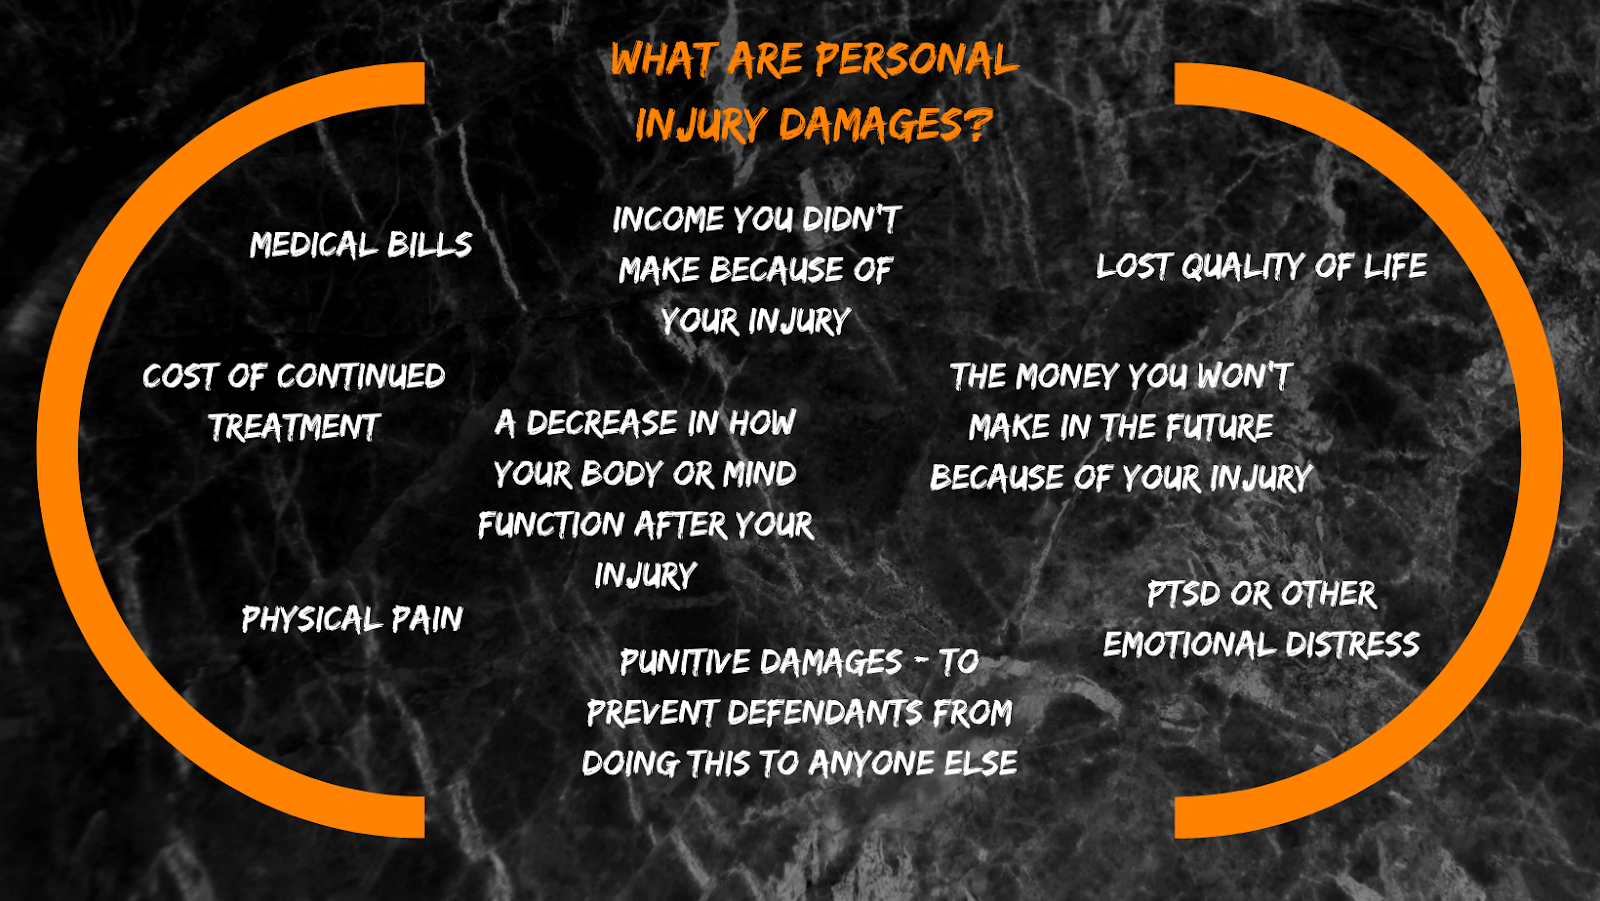 Image by The Biker Lawyers, personal injury attorneys, outlining various types of personal injury damages to consider.